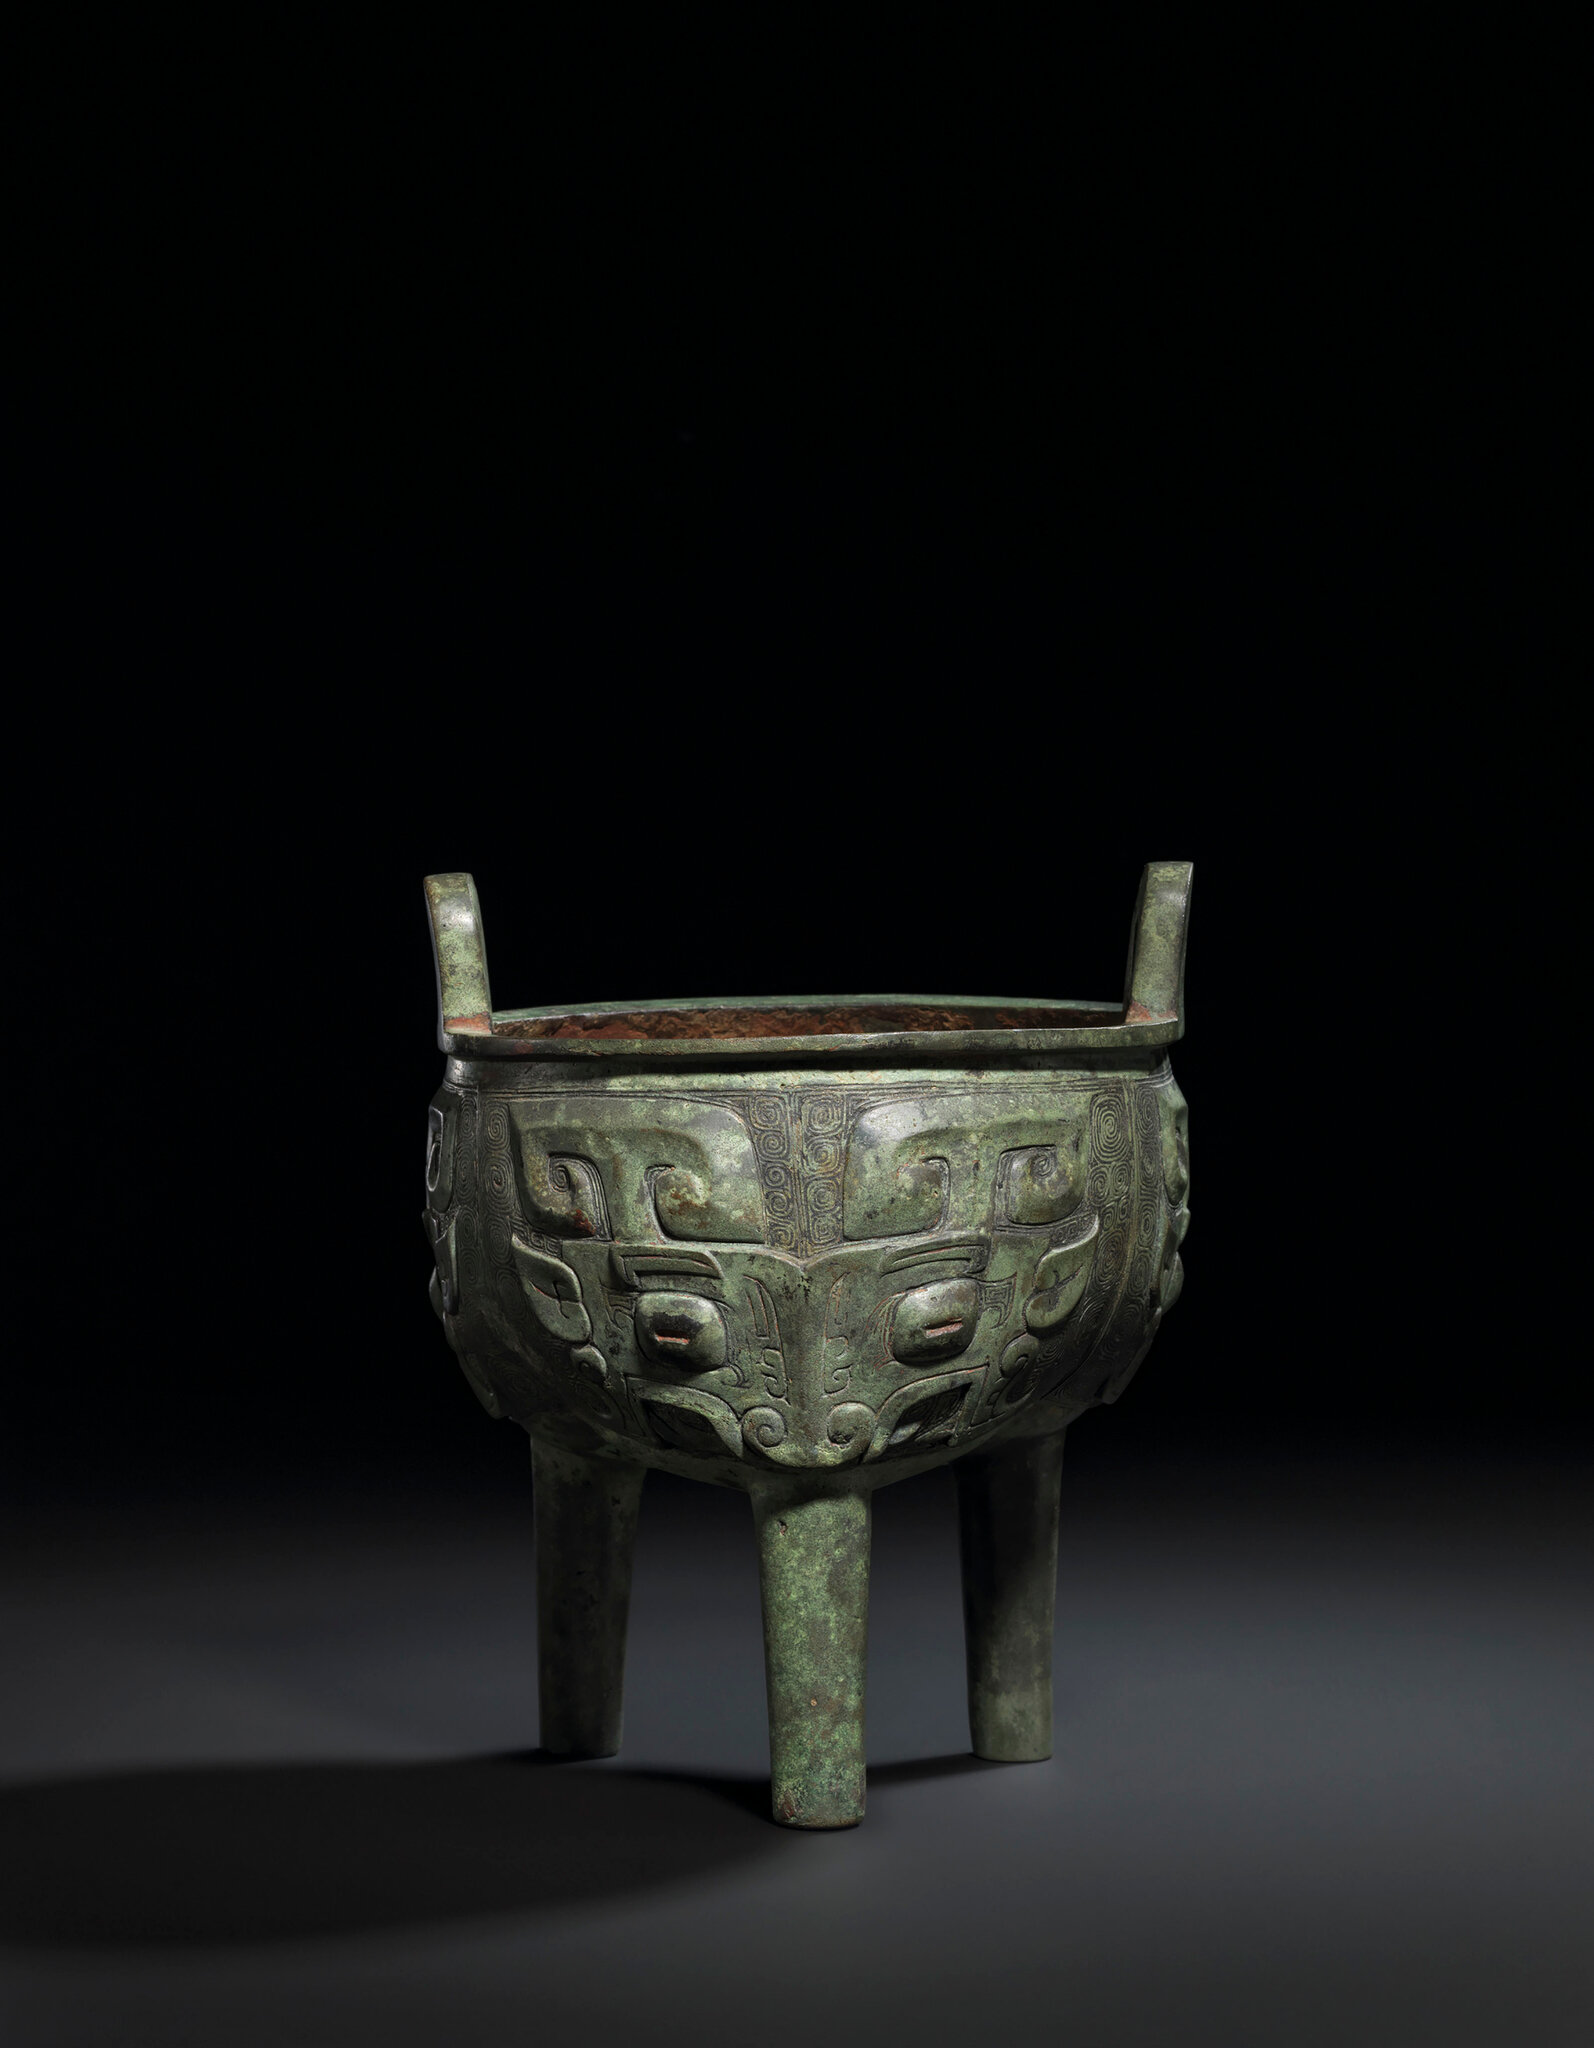 2019_CKS_17114_0001_000(a_bronze_ritual_food_vessel_and_cover_gui_western_zhou_dynasty)